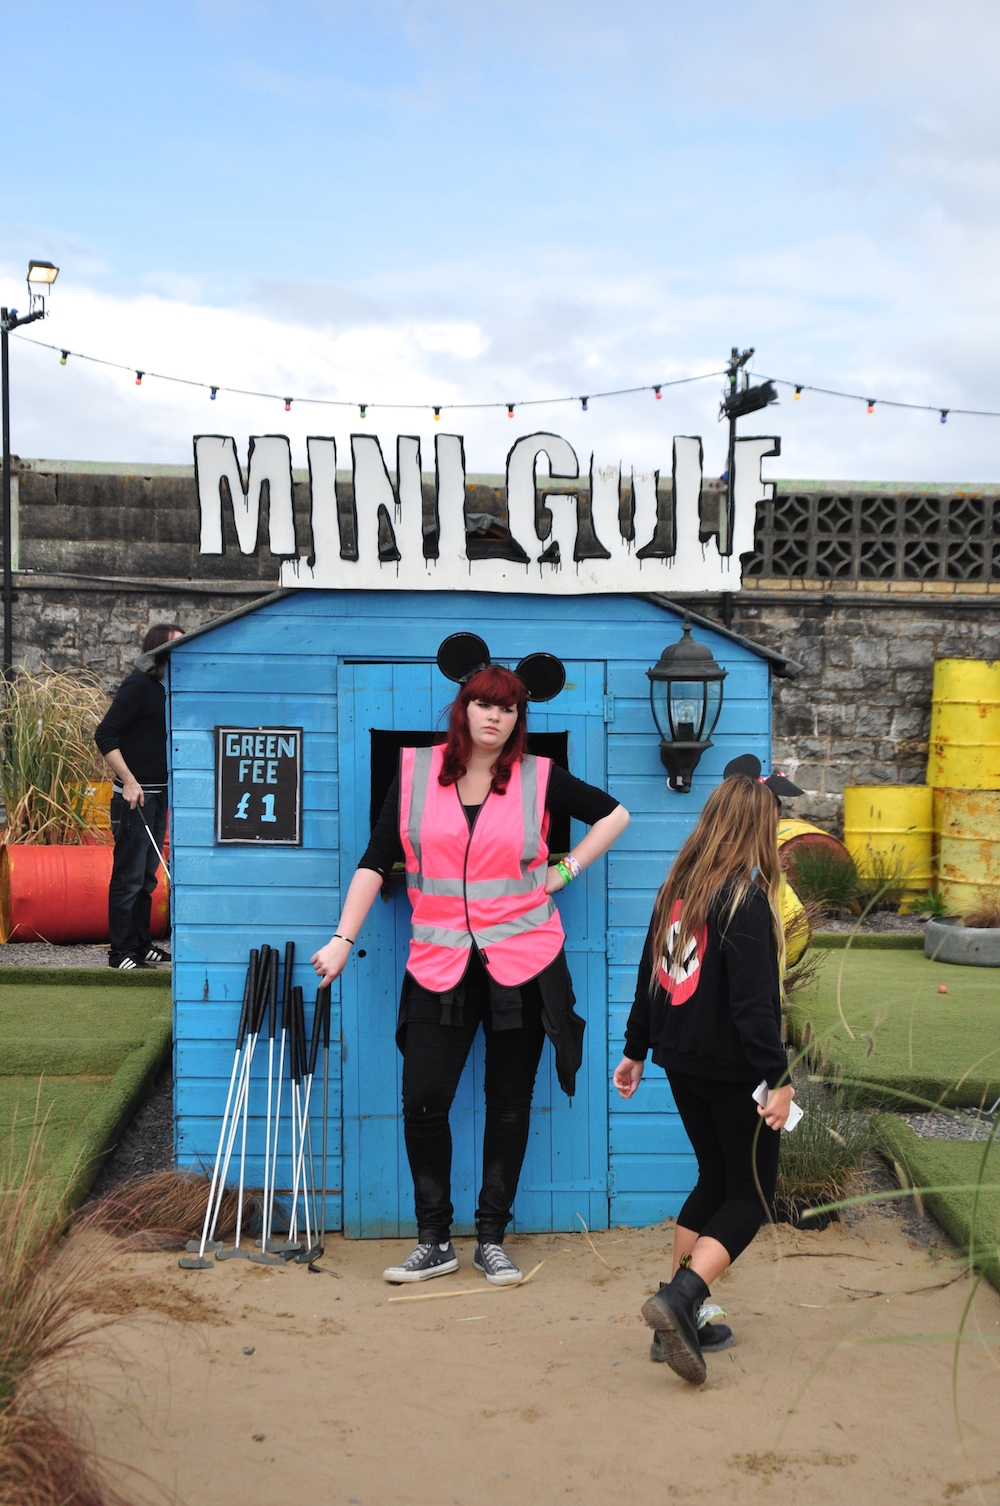 Dismaland_banksy__beau_loves_monkey_mccoy_mini_gulf